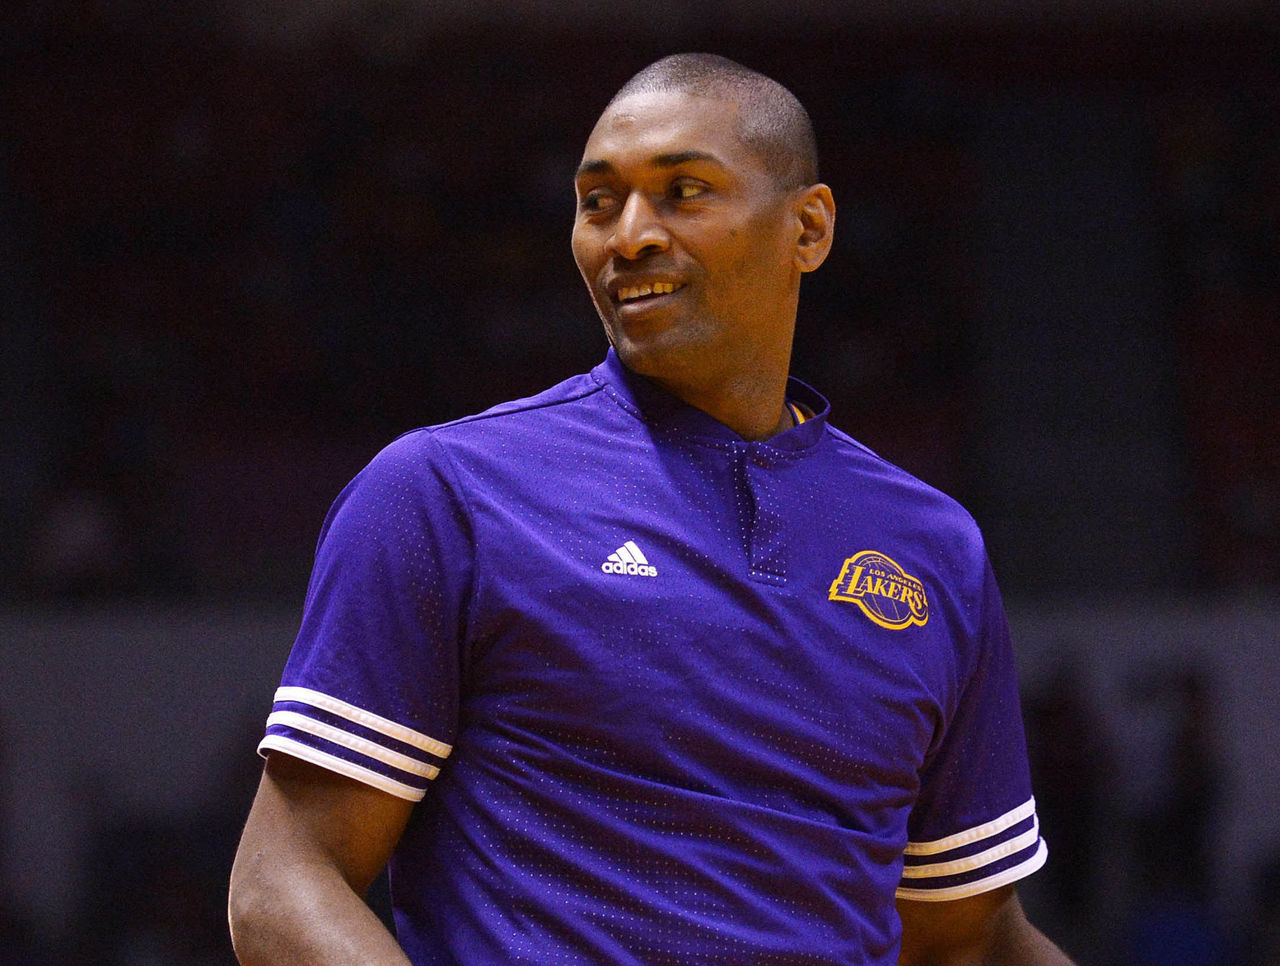 Image Result For Metta World Peace